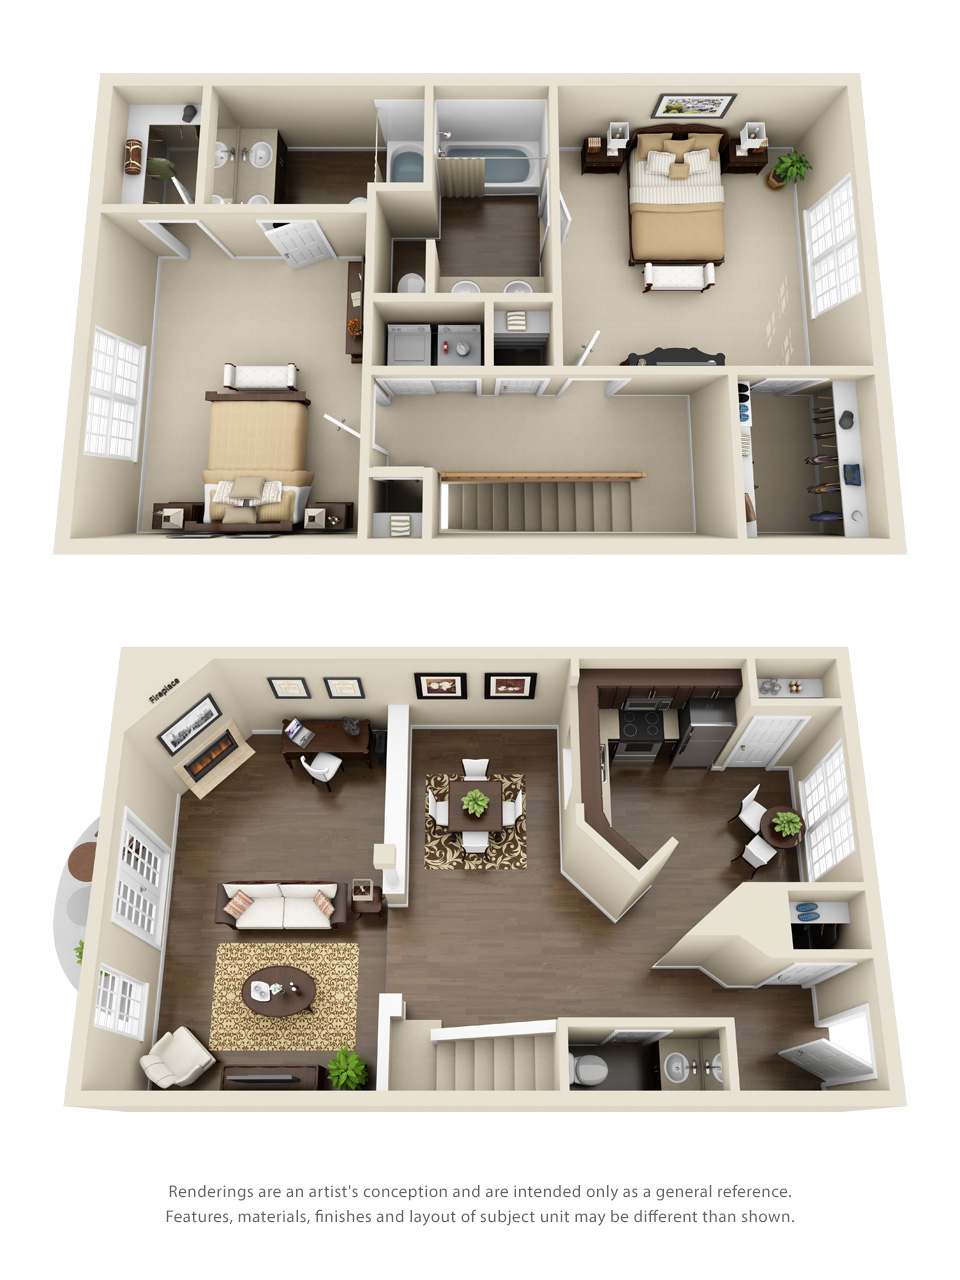 Luxury 1 2 And 3 Bedroom Suwanee Apartments For Rent Steadfast Apartment Rental Suwanee Georgia Sims House Apartment Layout House Layout Plans